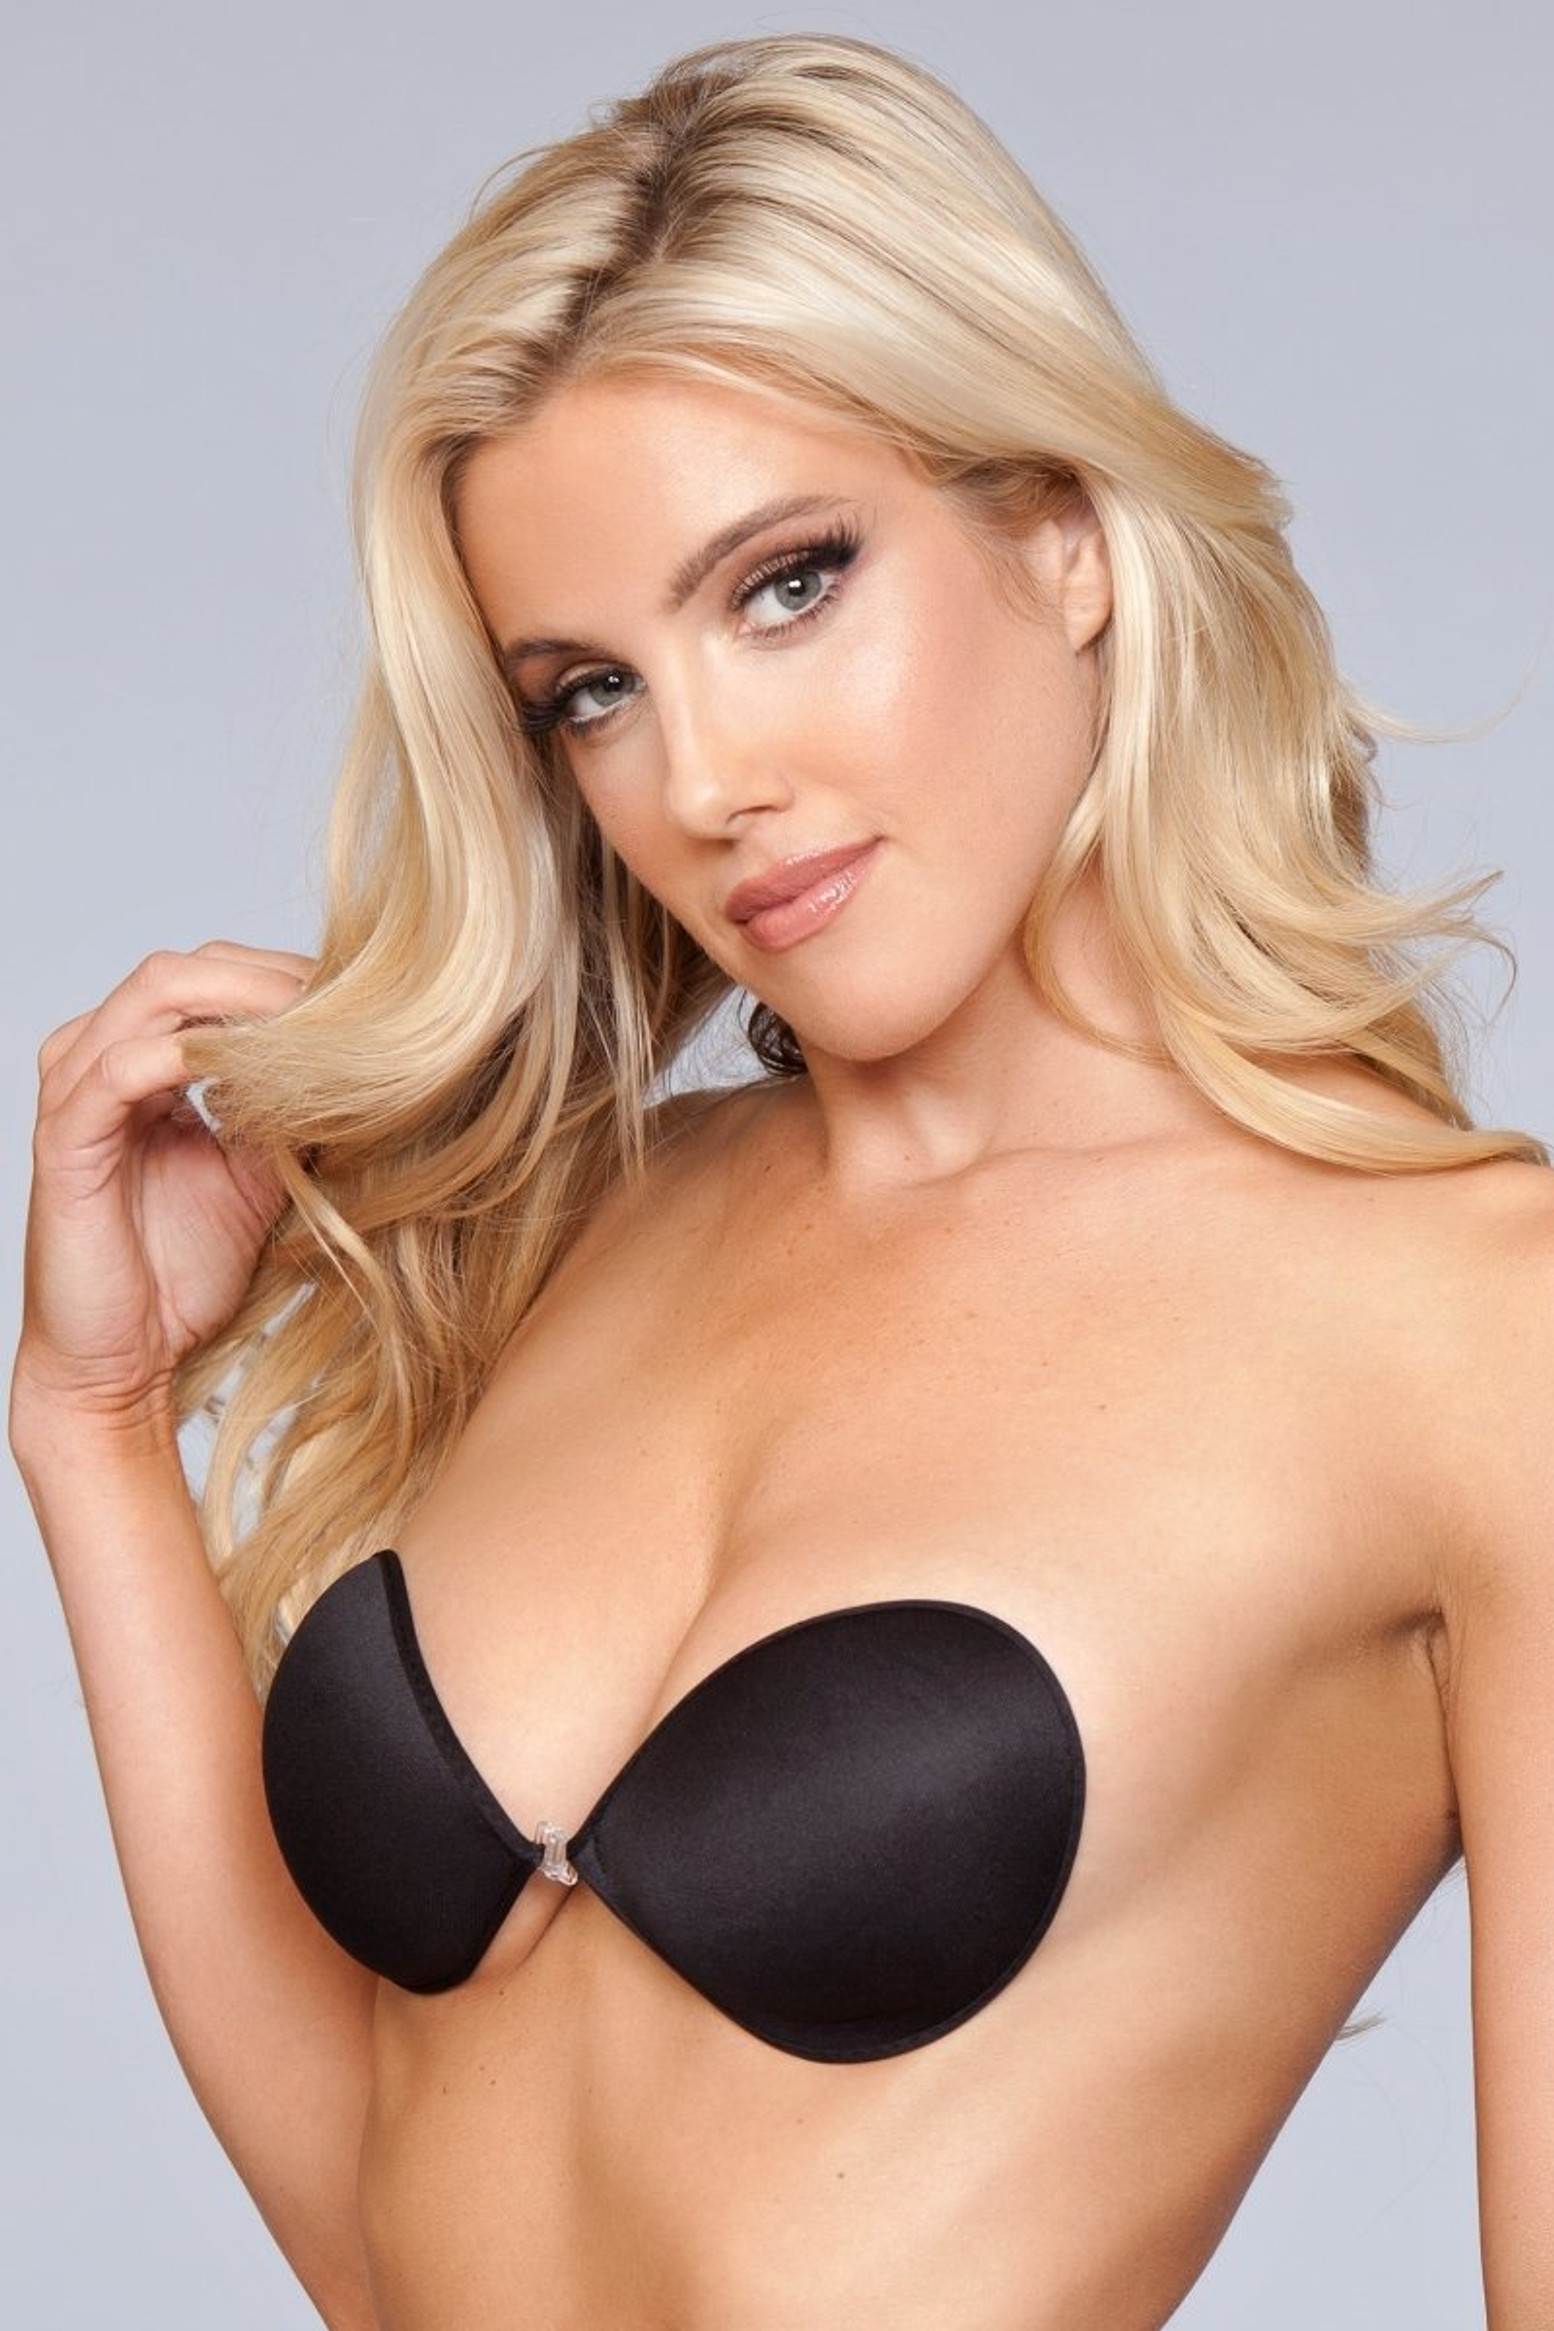 XB001 BK Smooth Invisible Bra - Black